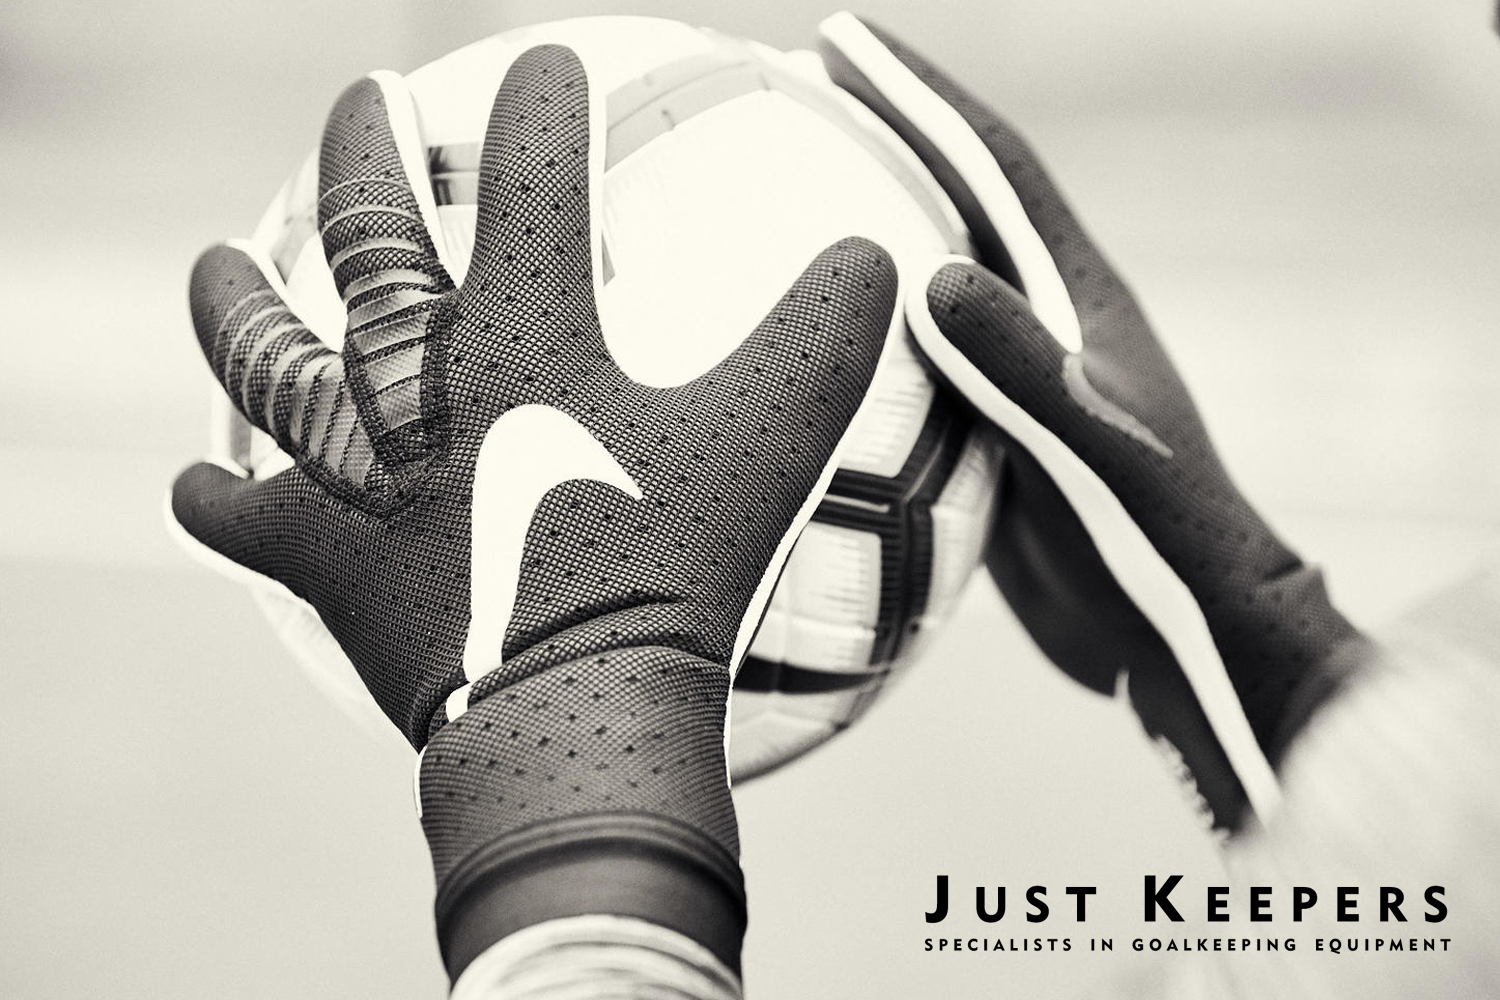 Nike Reimagines Goalkeeper Gloves - THE MERCURIAL TOUCH ELITE - www ... 2273dc8b2e76